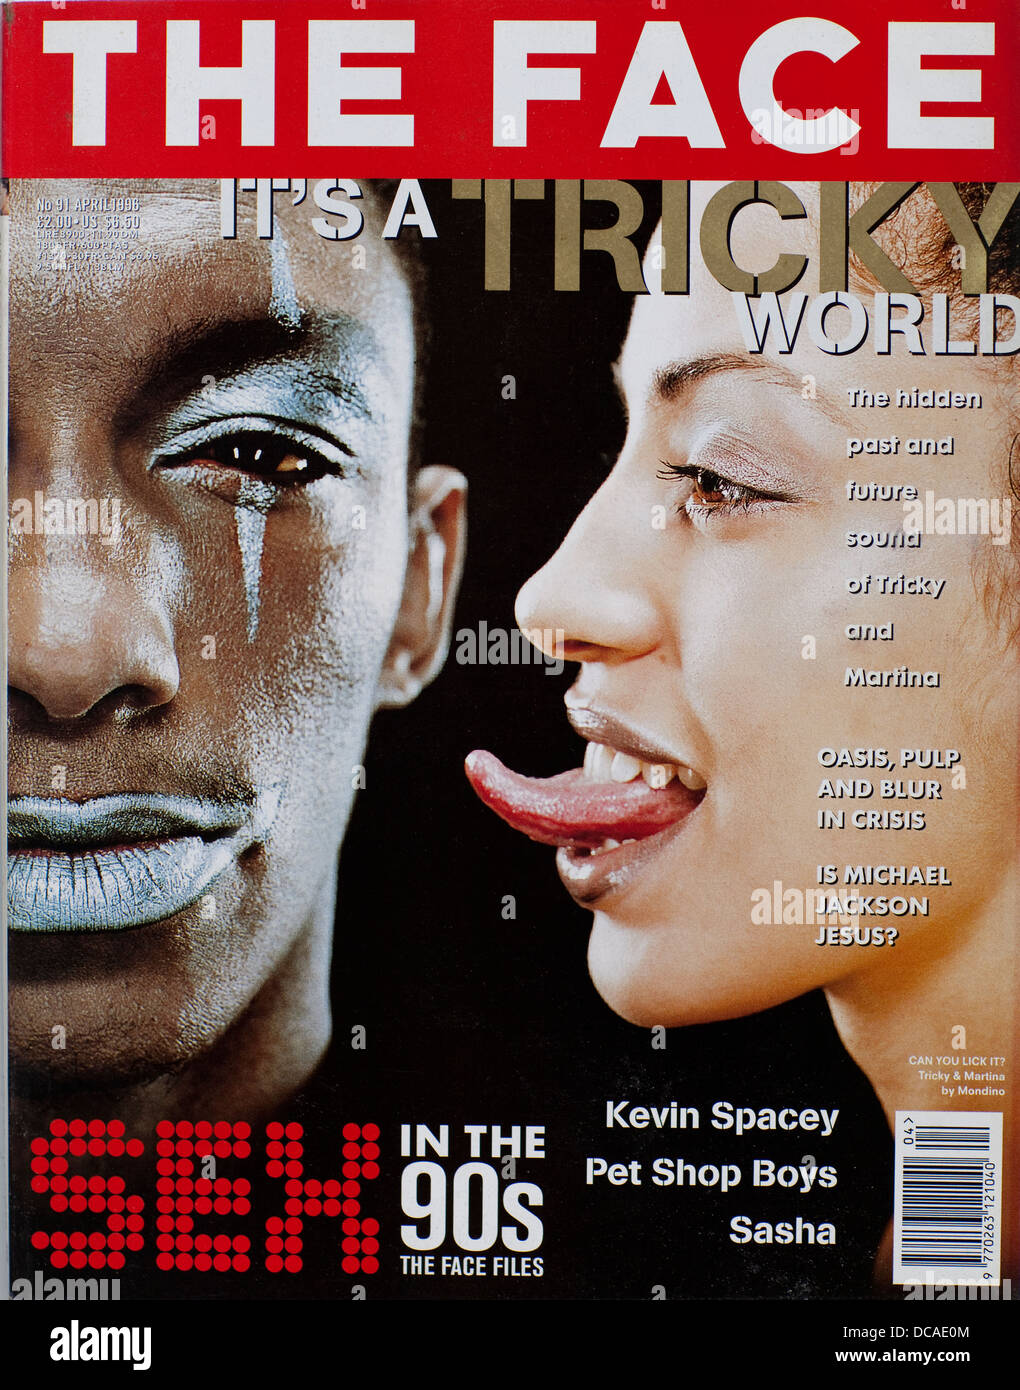 The Face - Volume 2 , Number 91, April 1996 - Tricky - Stock Image